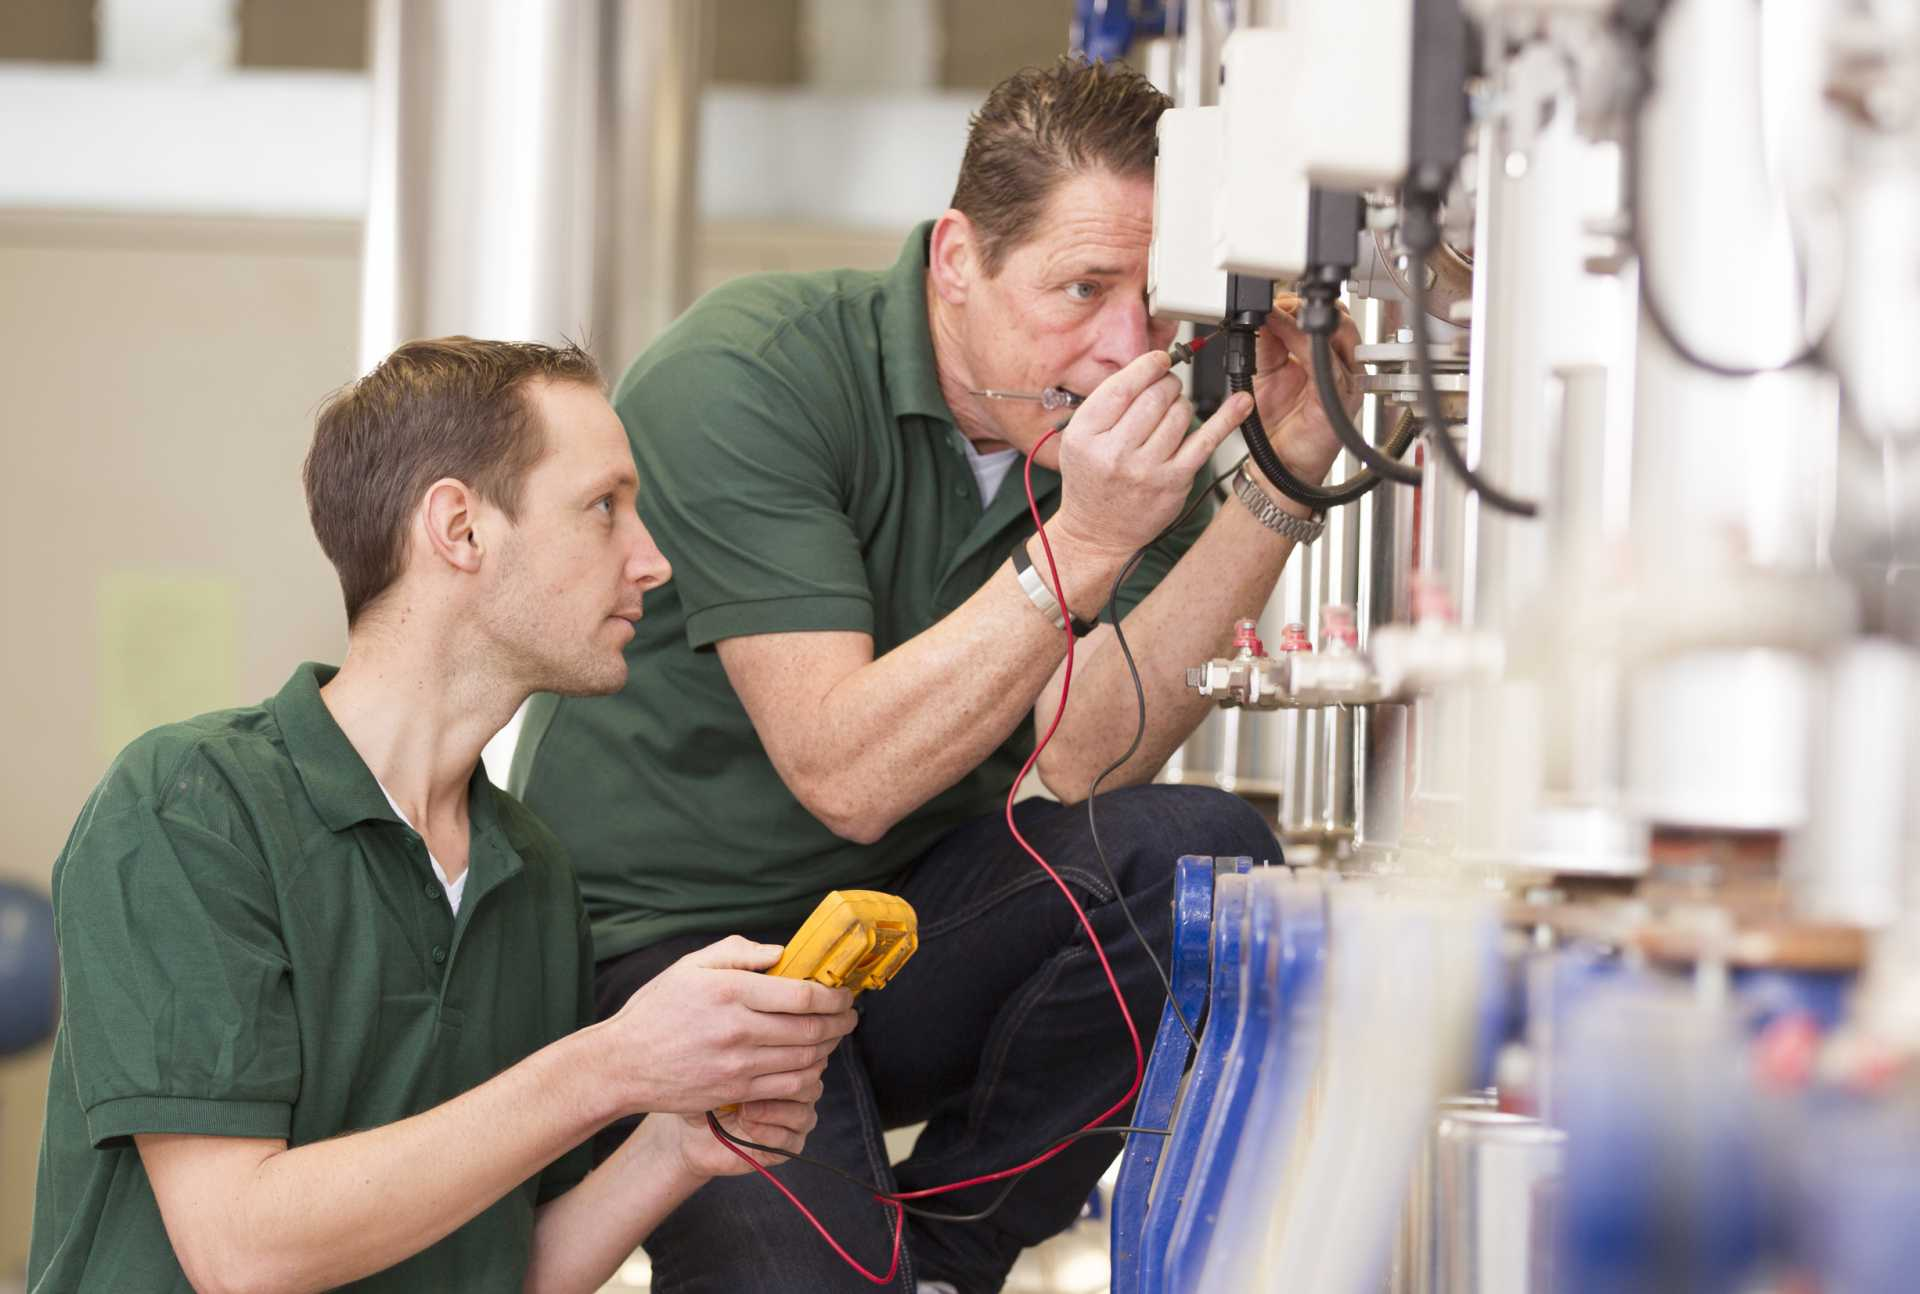 National Skills Task Force - Senior technician and junior technician repairing agriculture machinery in a greenhouse - shutterstock_258342233 (1)